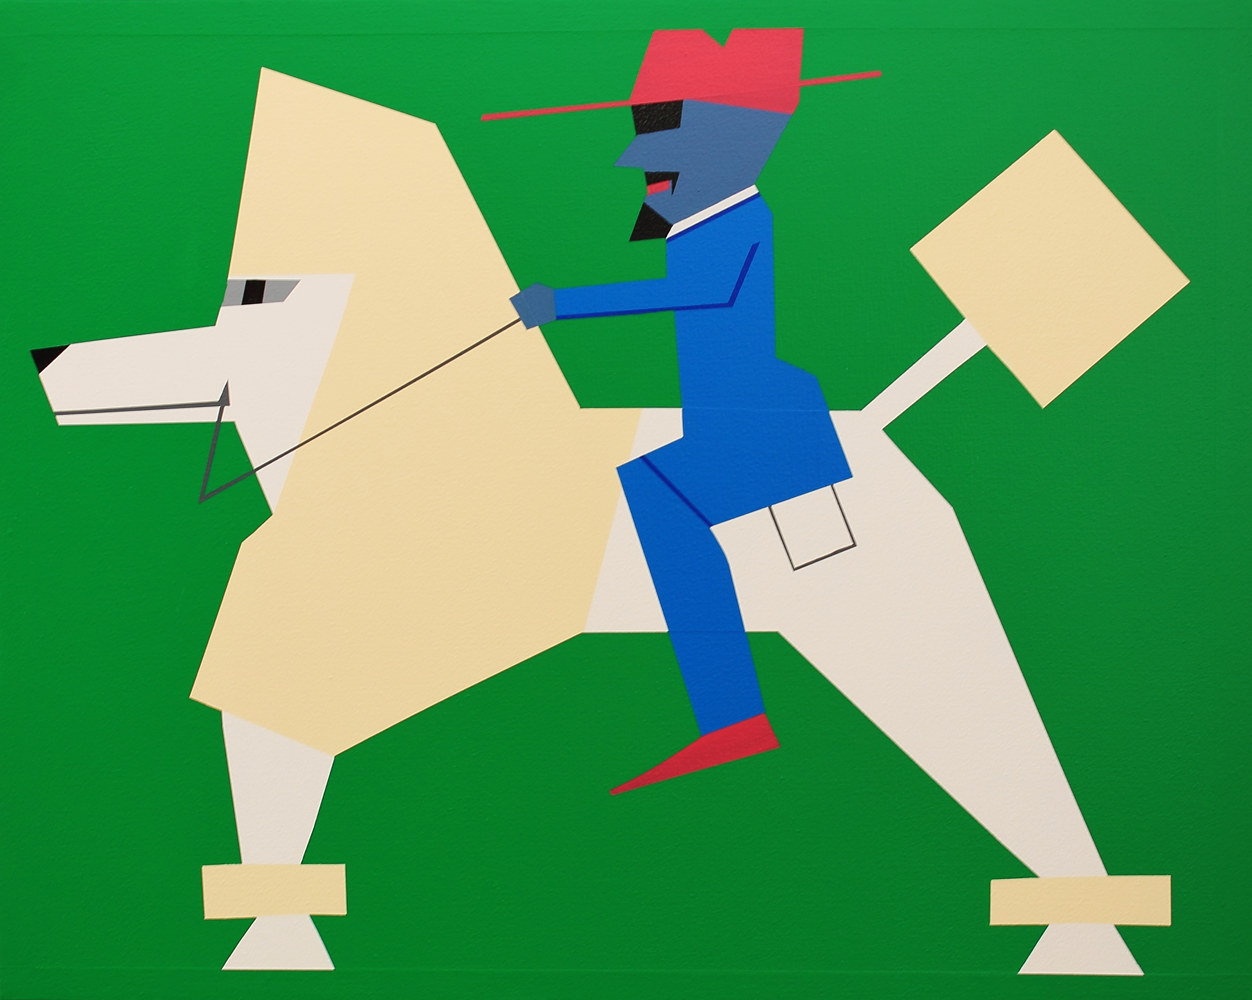 Acrylic painting WestSide Dandy Riding Poodle by Jorge Puron